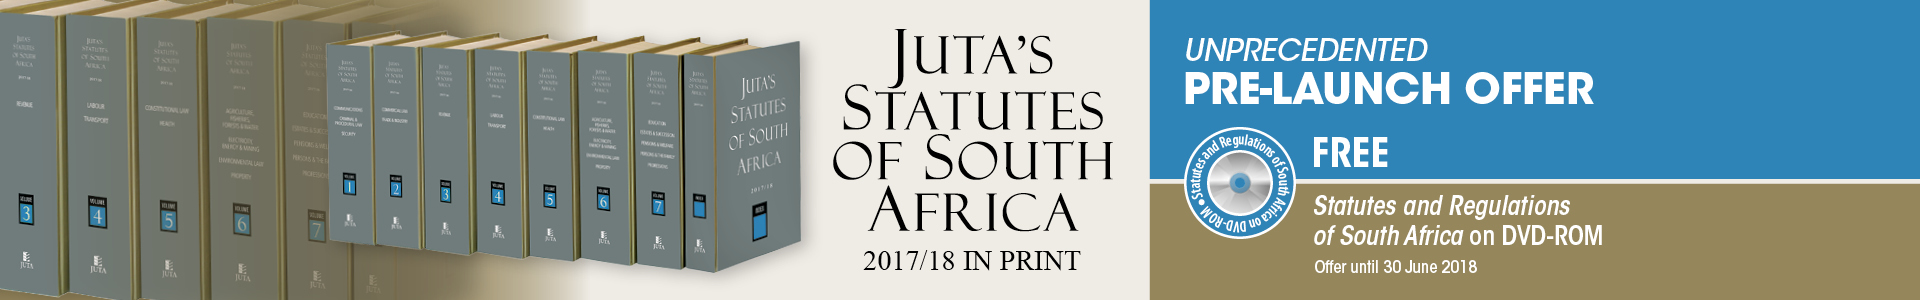 Juta's Statutes of South Africa 2017/18 - Unprecedented Pre-Launch Offer: Free Statutes and Regulations of South Africa on DVD-ROM! Offer until 30 June 2018